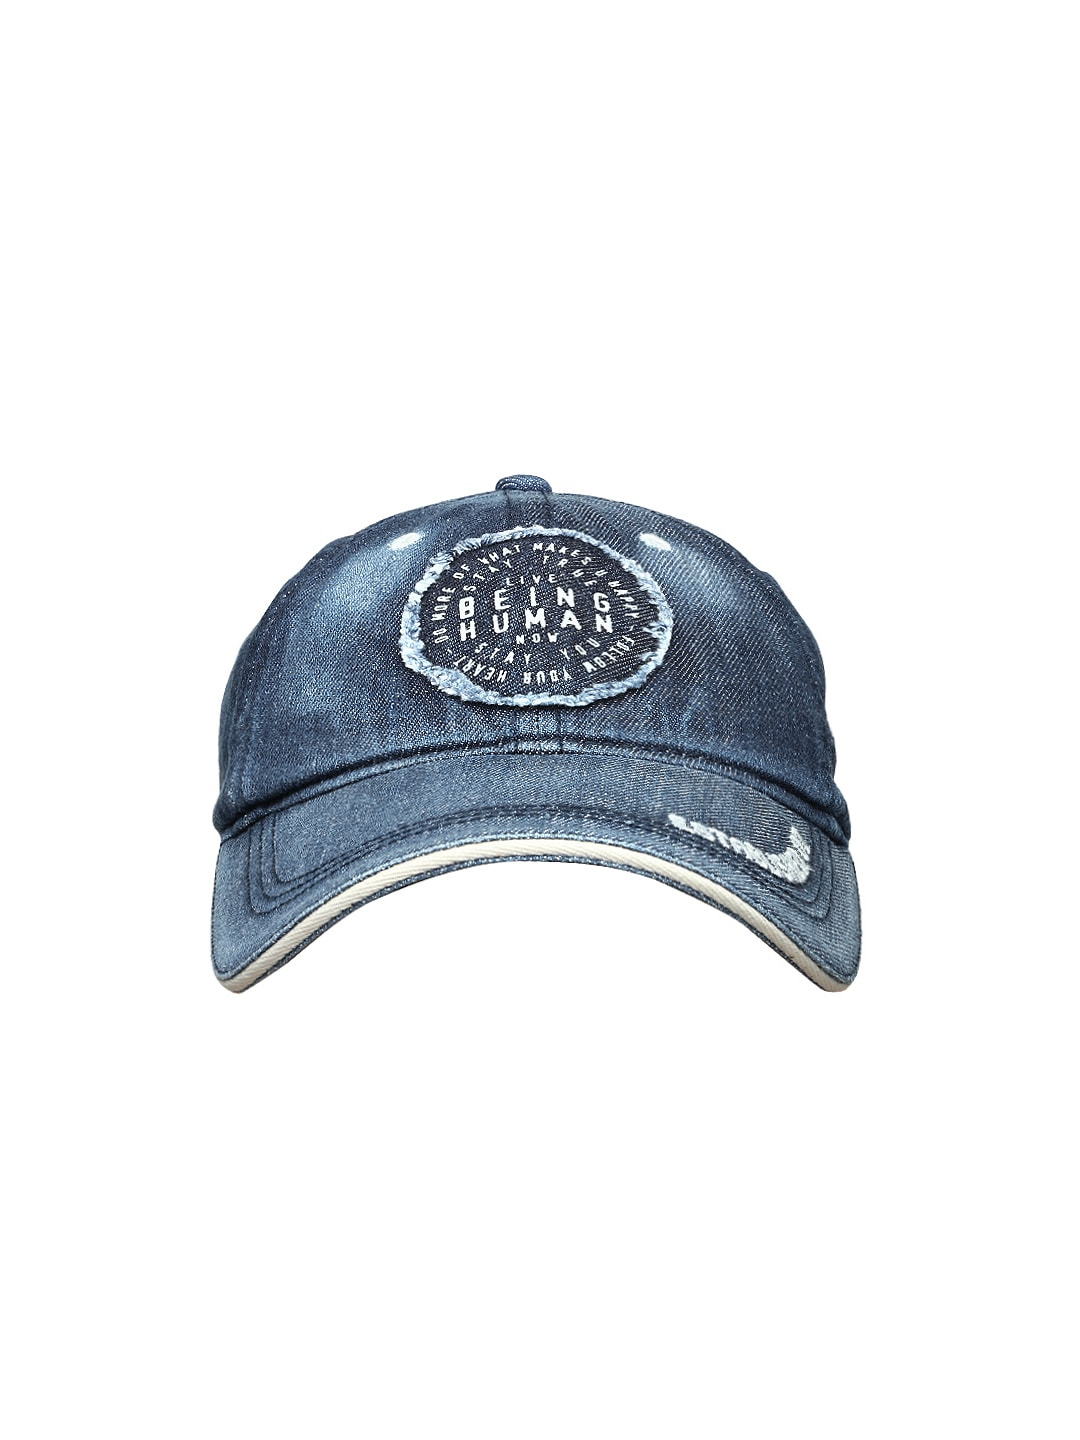 84a80f14475 Being human bhc5062-navy Men Blue Denim Cap - Best Price in India ...